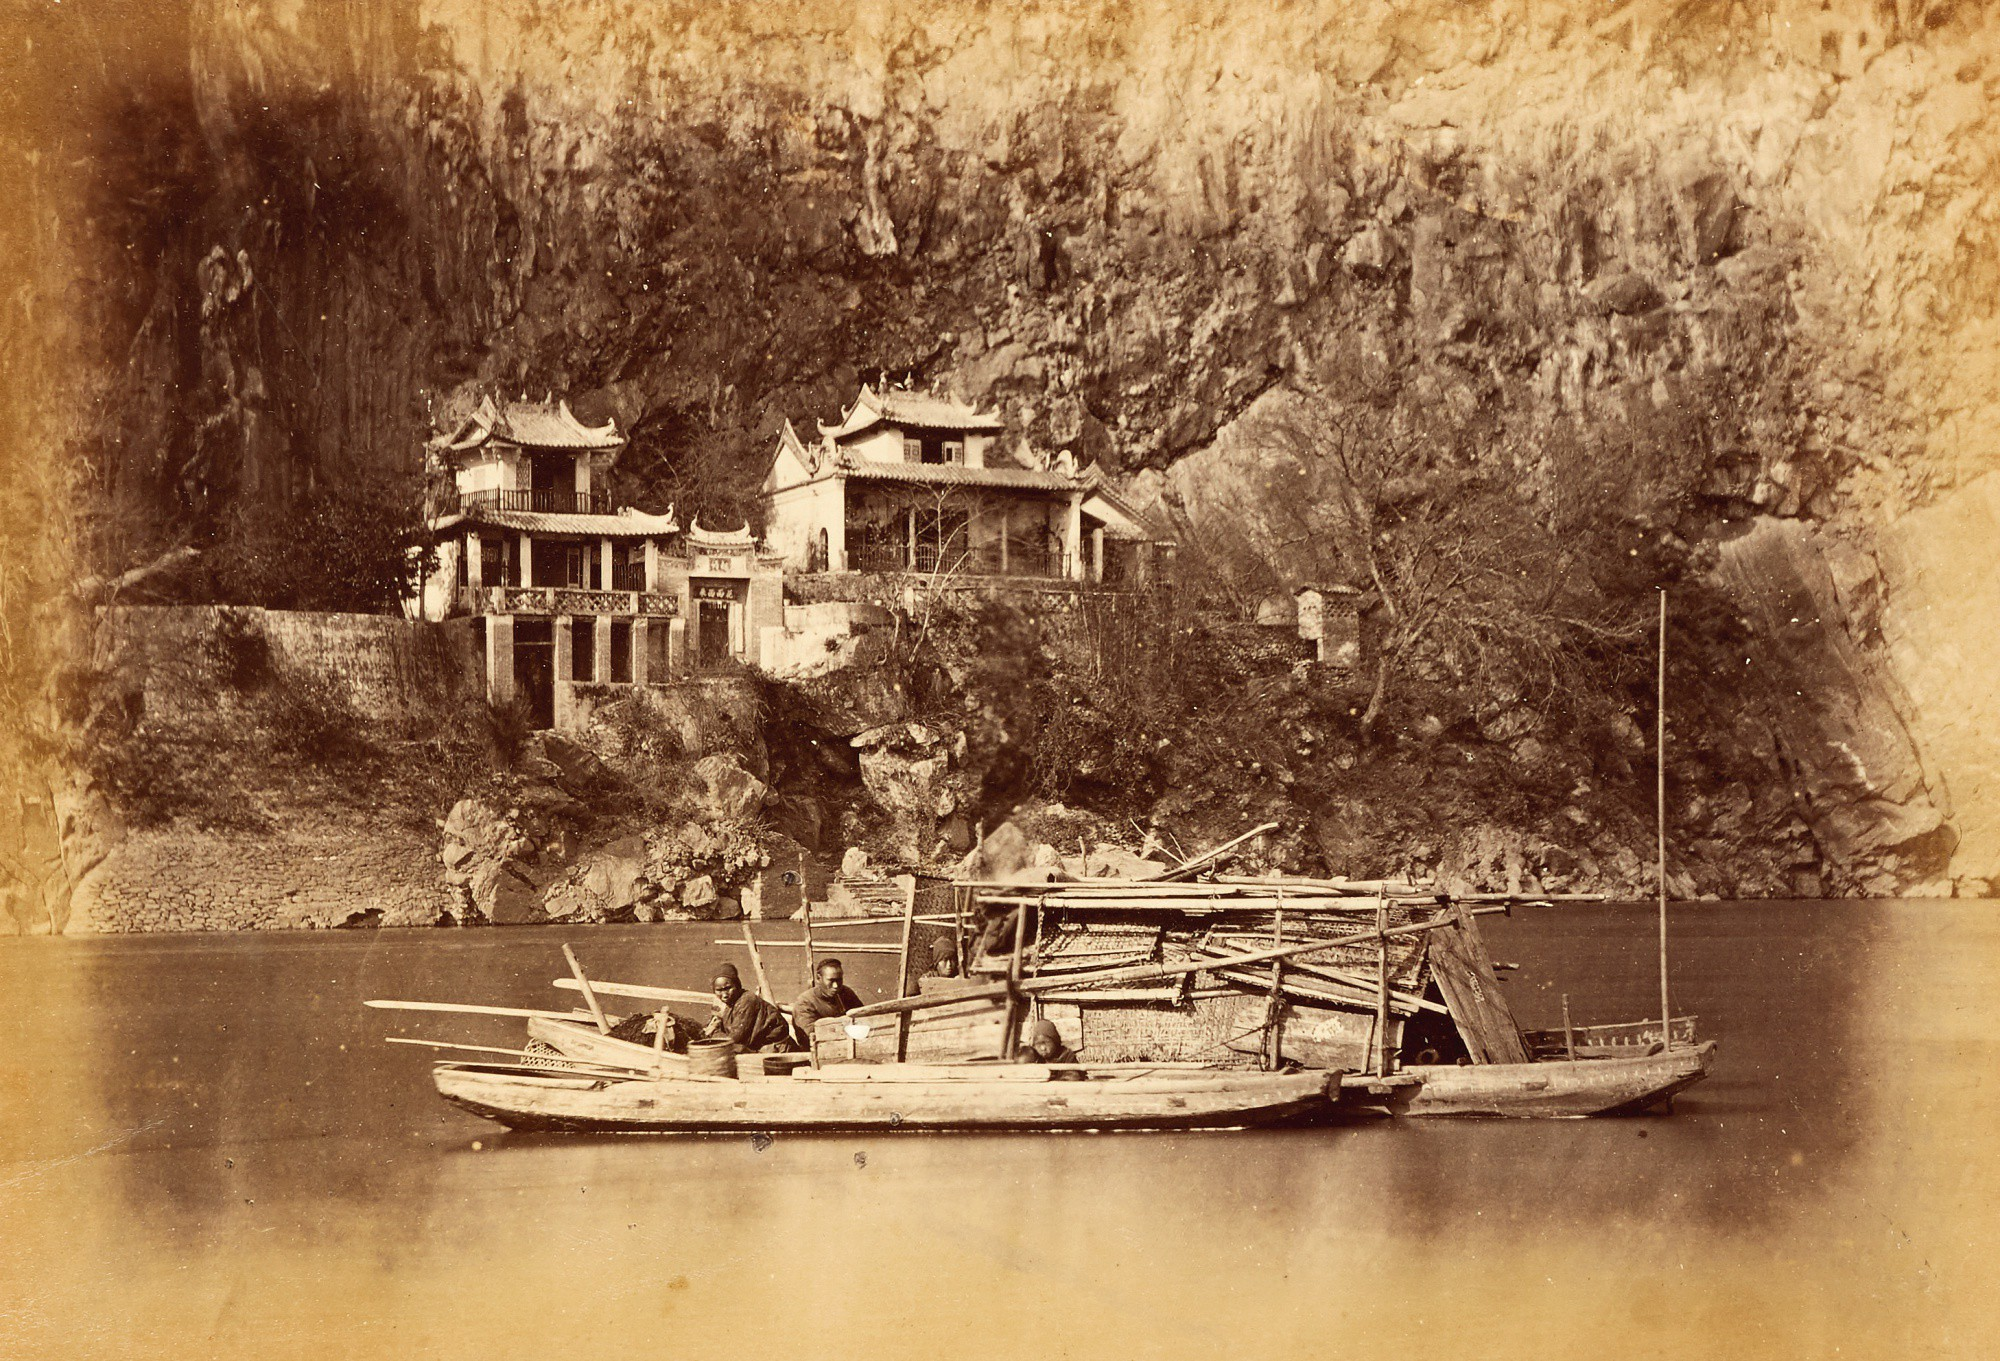 Thomson| Views on the North River, 1870